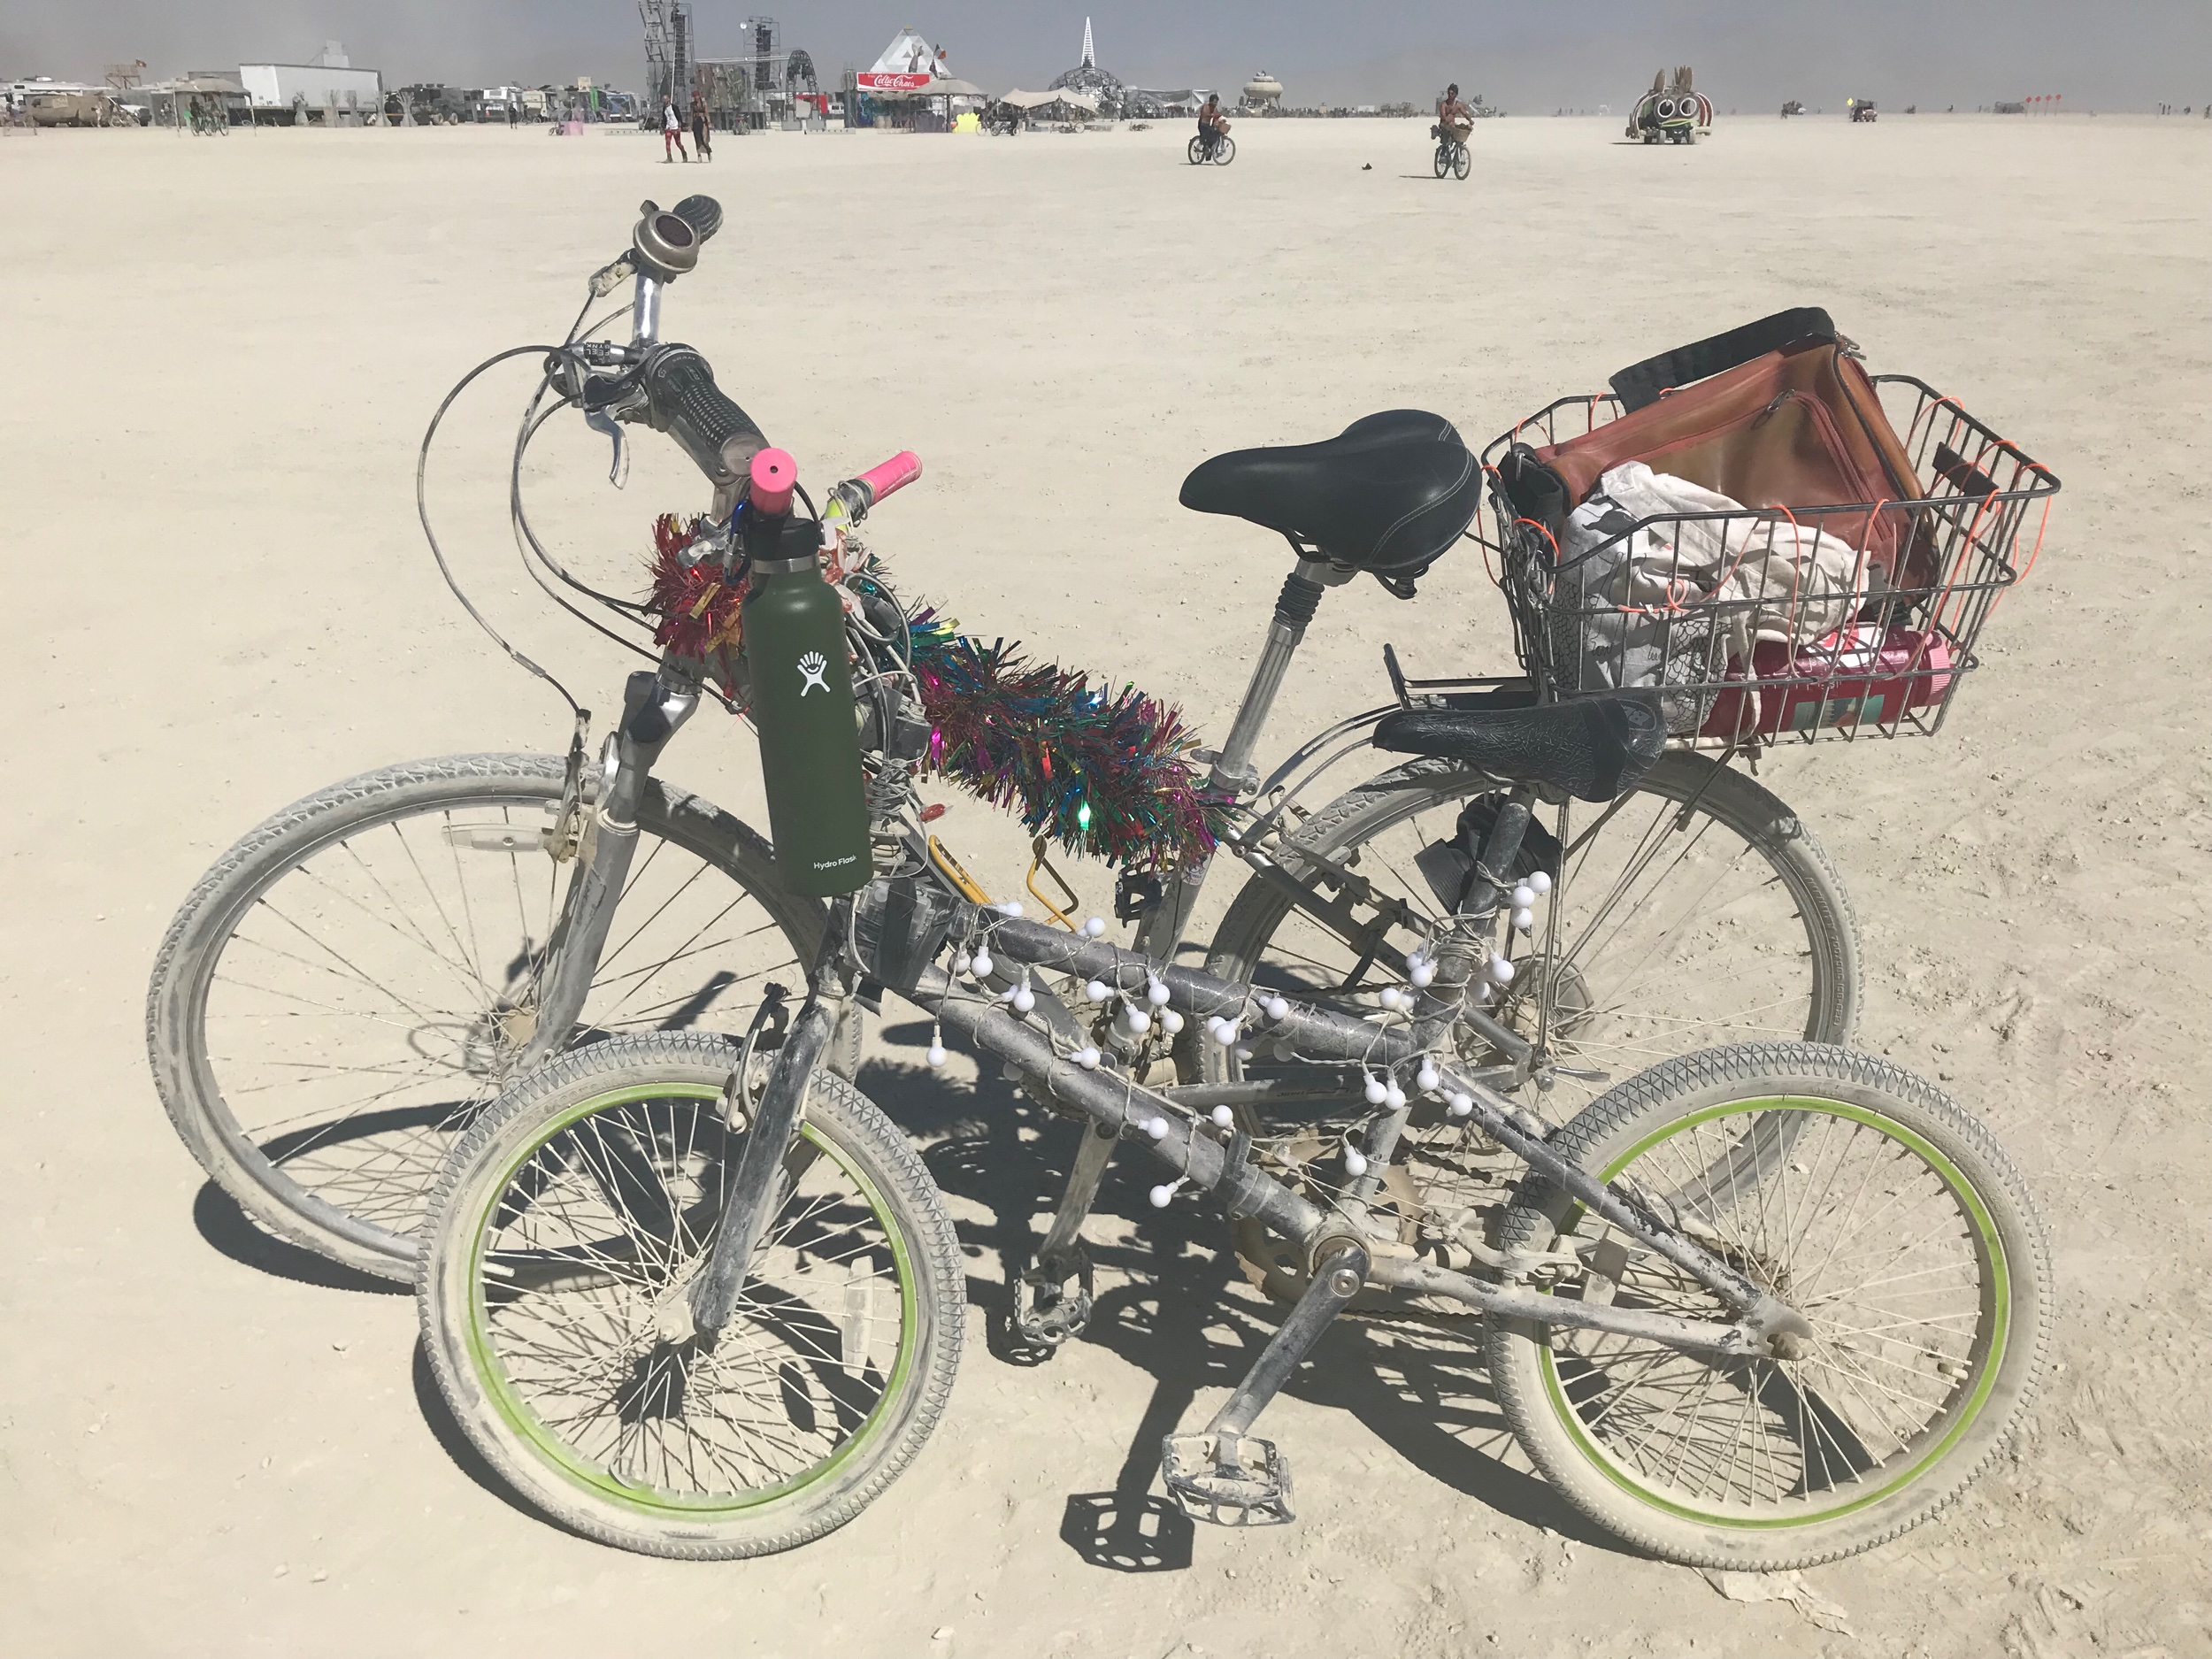 Playa bikes. Mine's the little one.